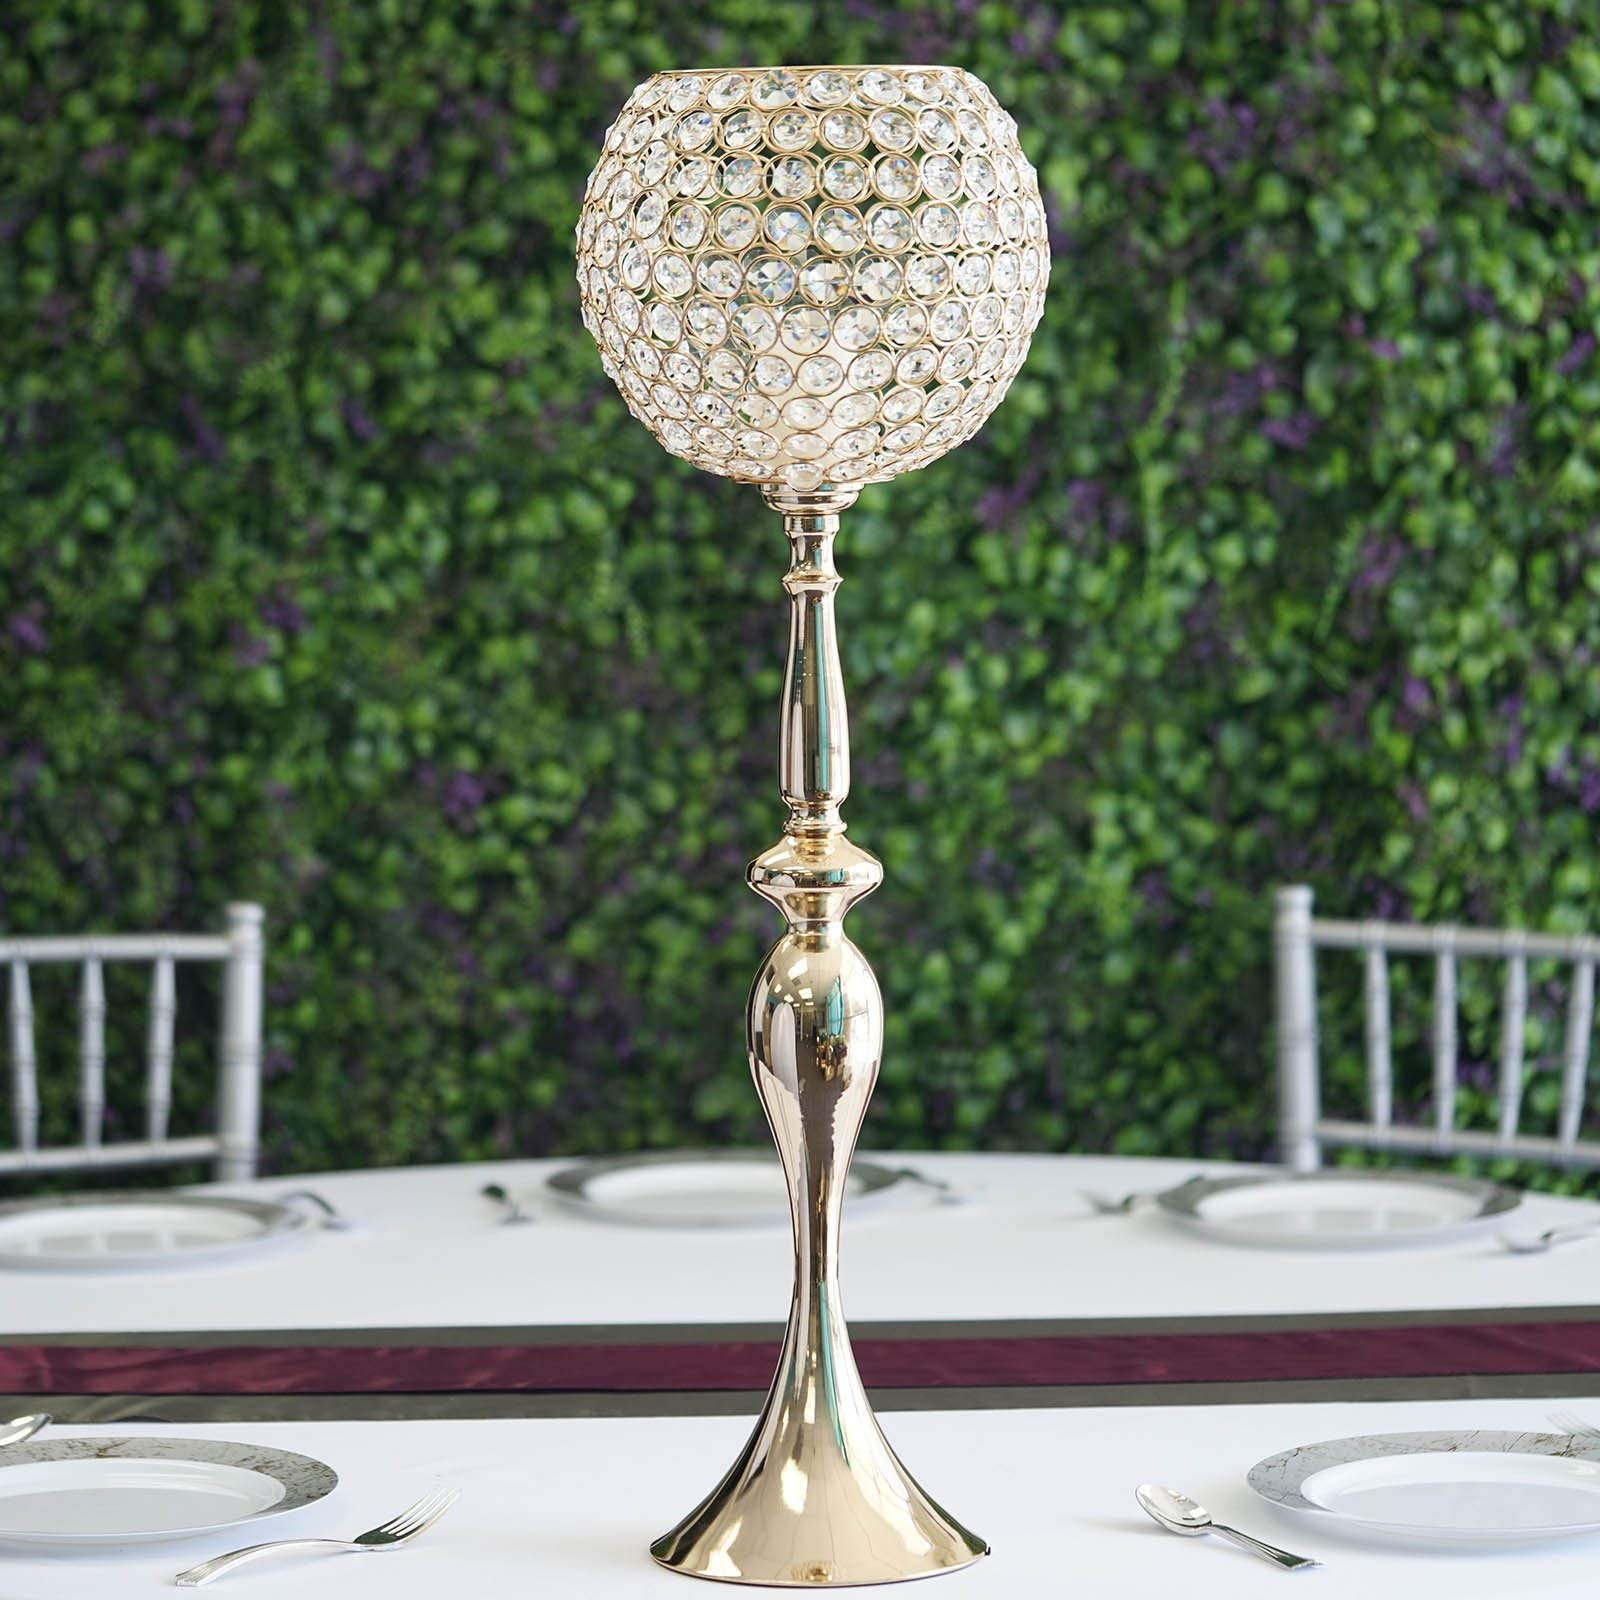 Tableclothsfactory 30'' Gold Acrylic Crystal Goblet Candle Holder Flower Ball Centerpiece for Wedding Events Decoration